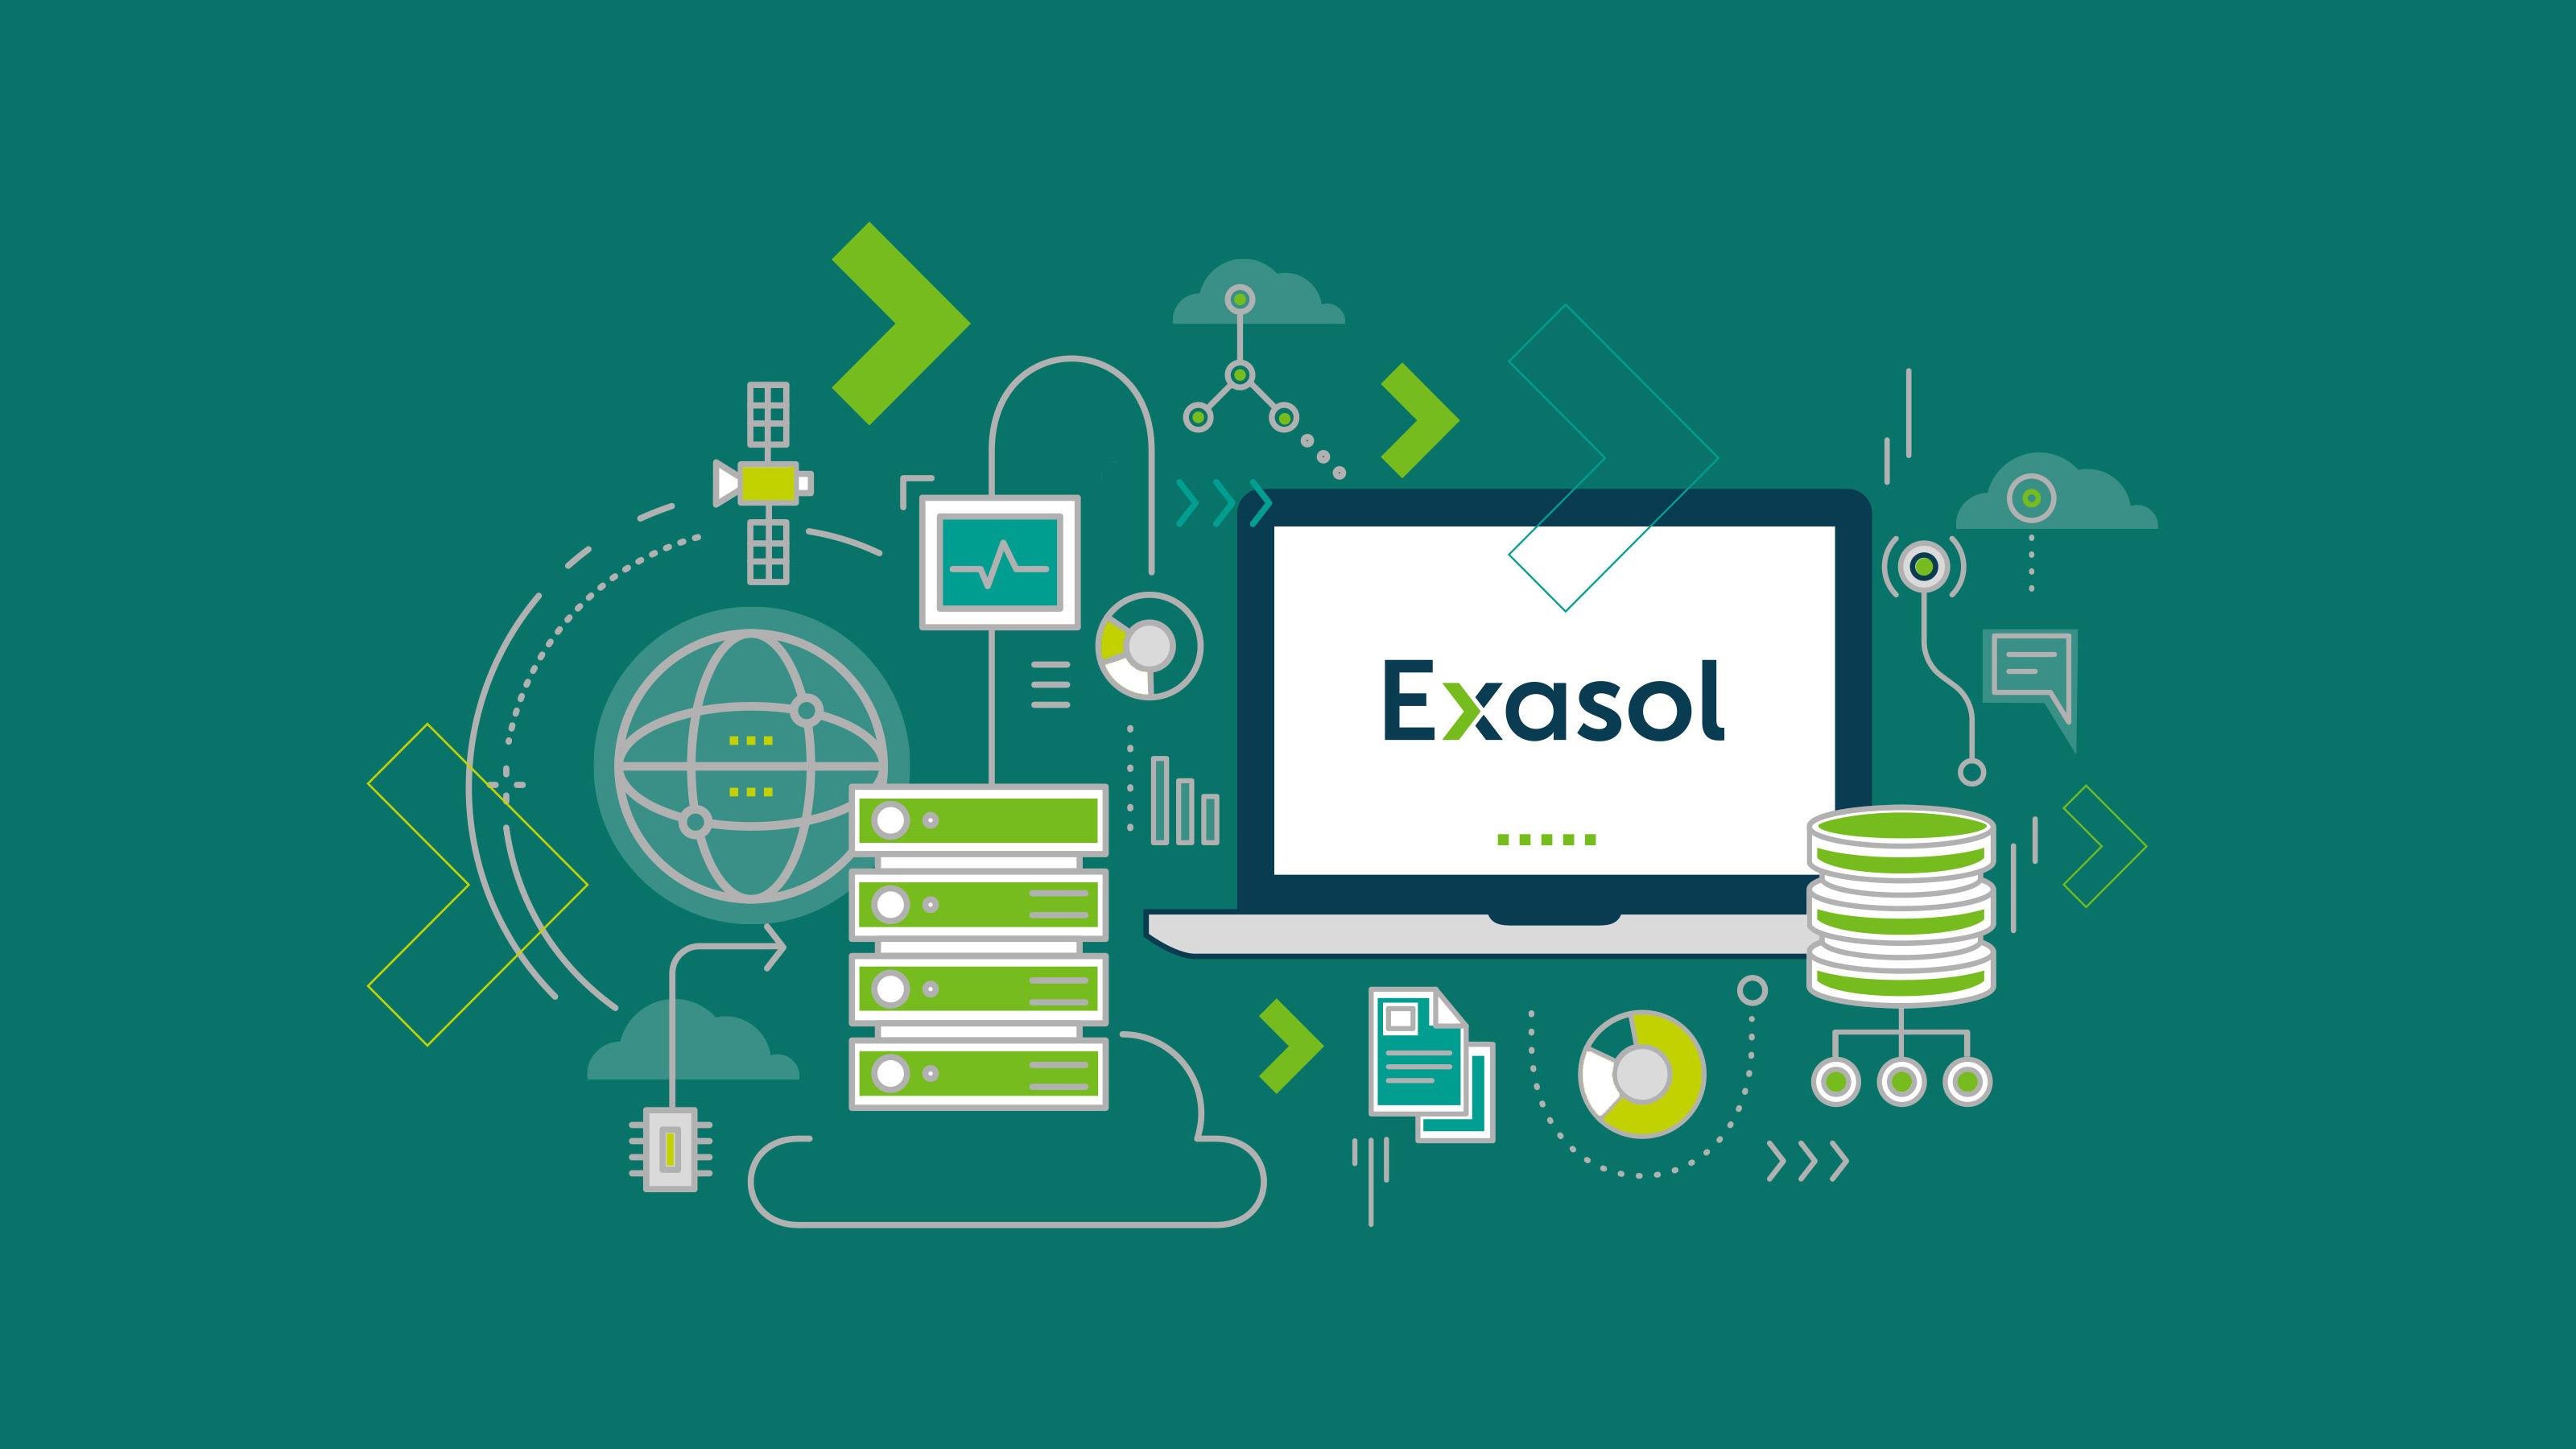 Brand illustration technology Exasol